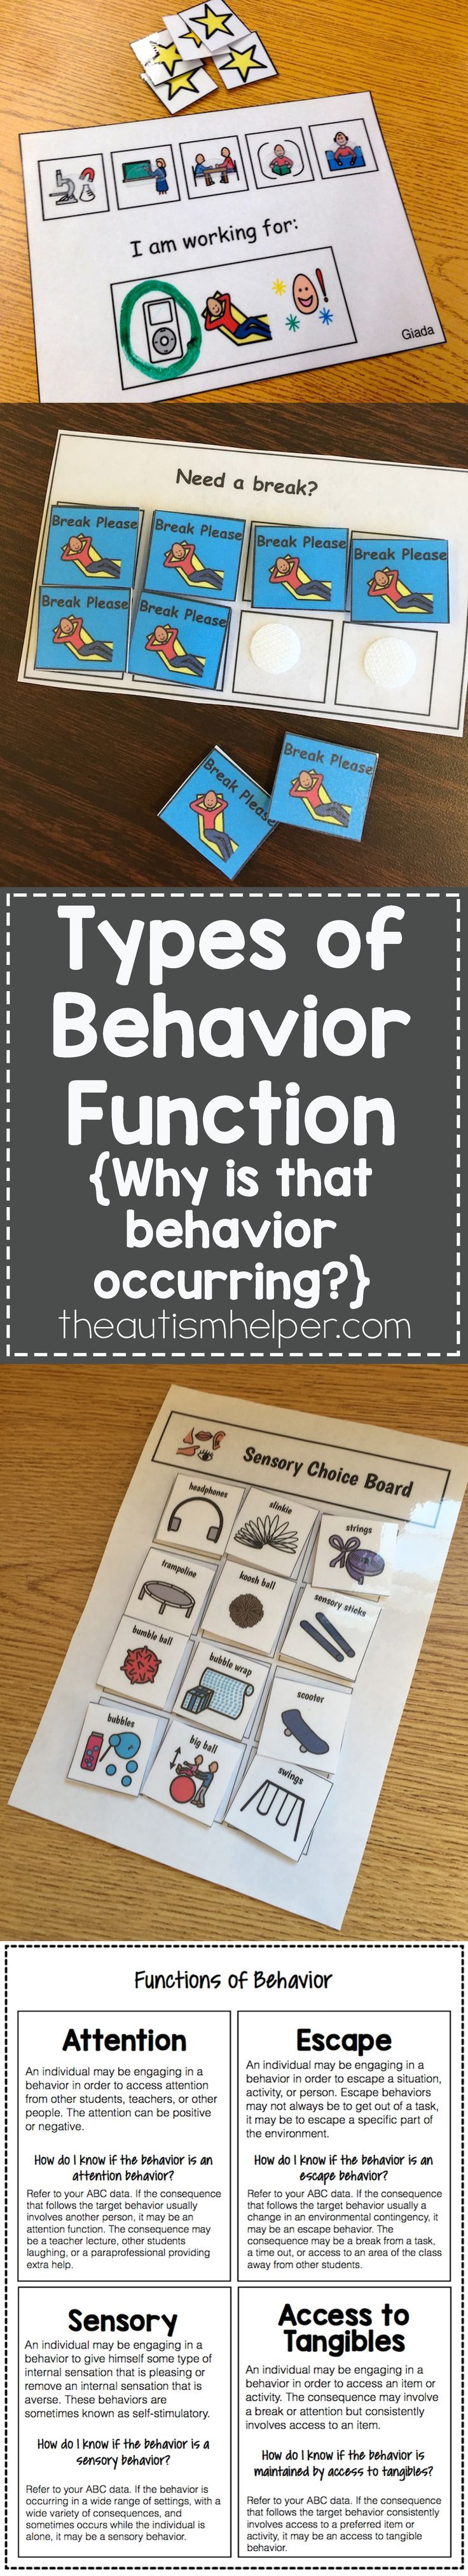 Every behavior has a reason for occurring & is followed by some type of reinforcer. Let's look closer at multiple behavioral functions on the blog! From theautismhelper.com #theautismhelper